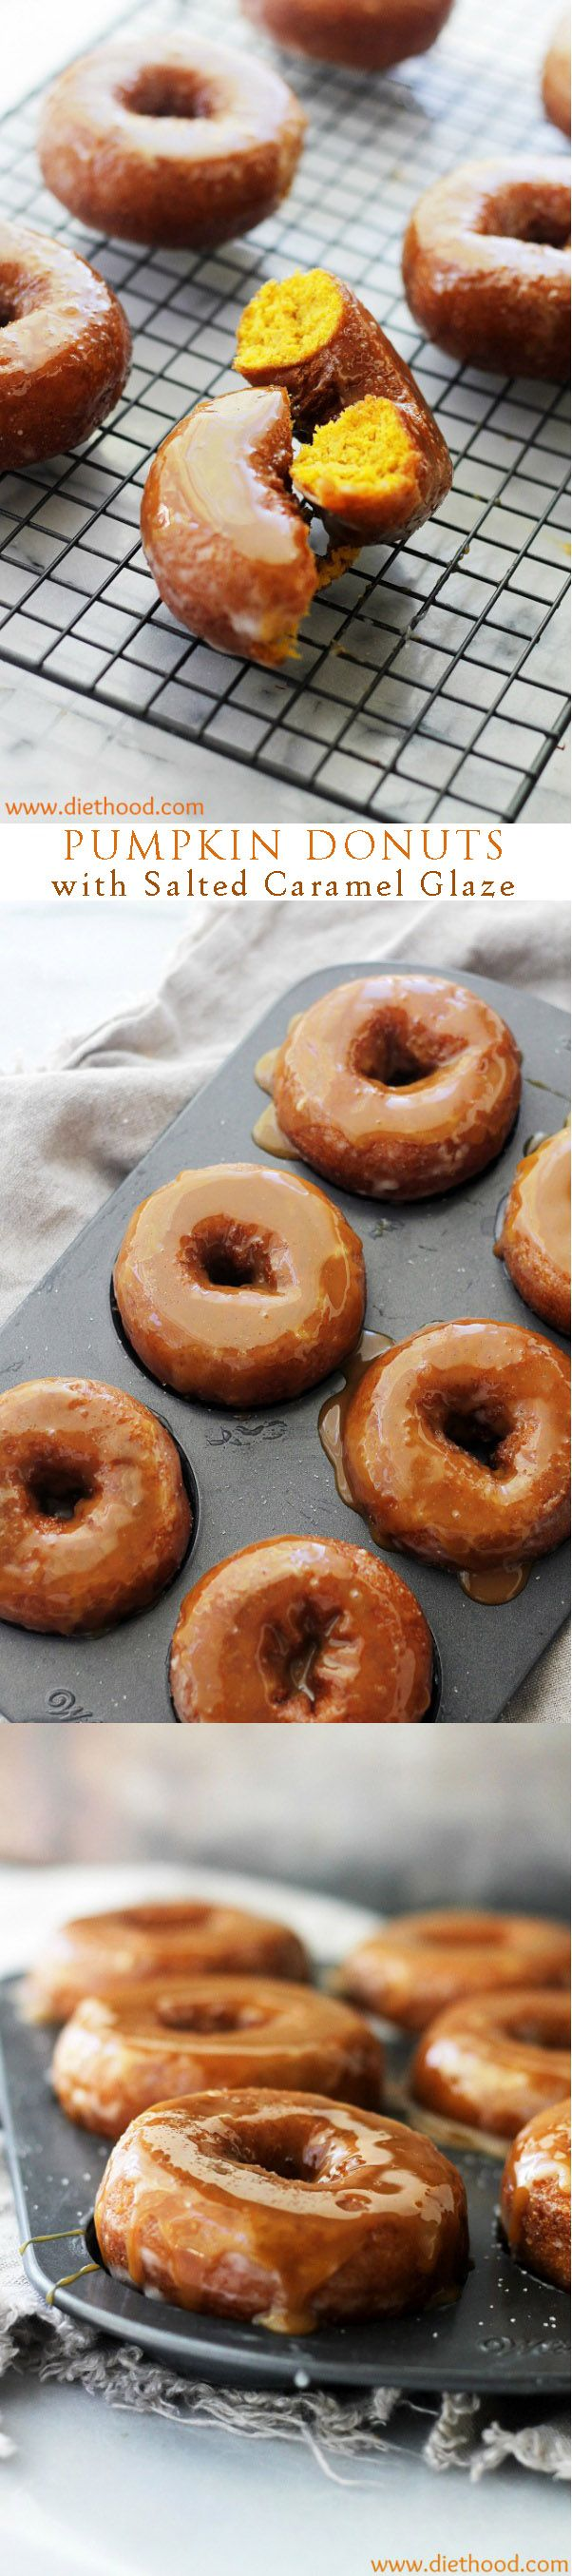 Baked Pumpkin Donuts dipped in a Salted Caramel Glaze. Your new favorite pumpkin recipe!!